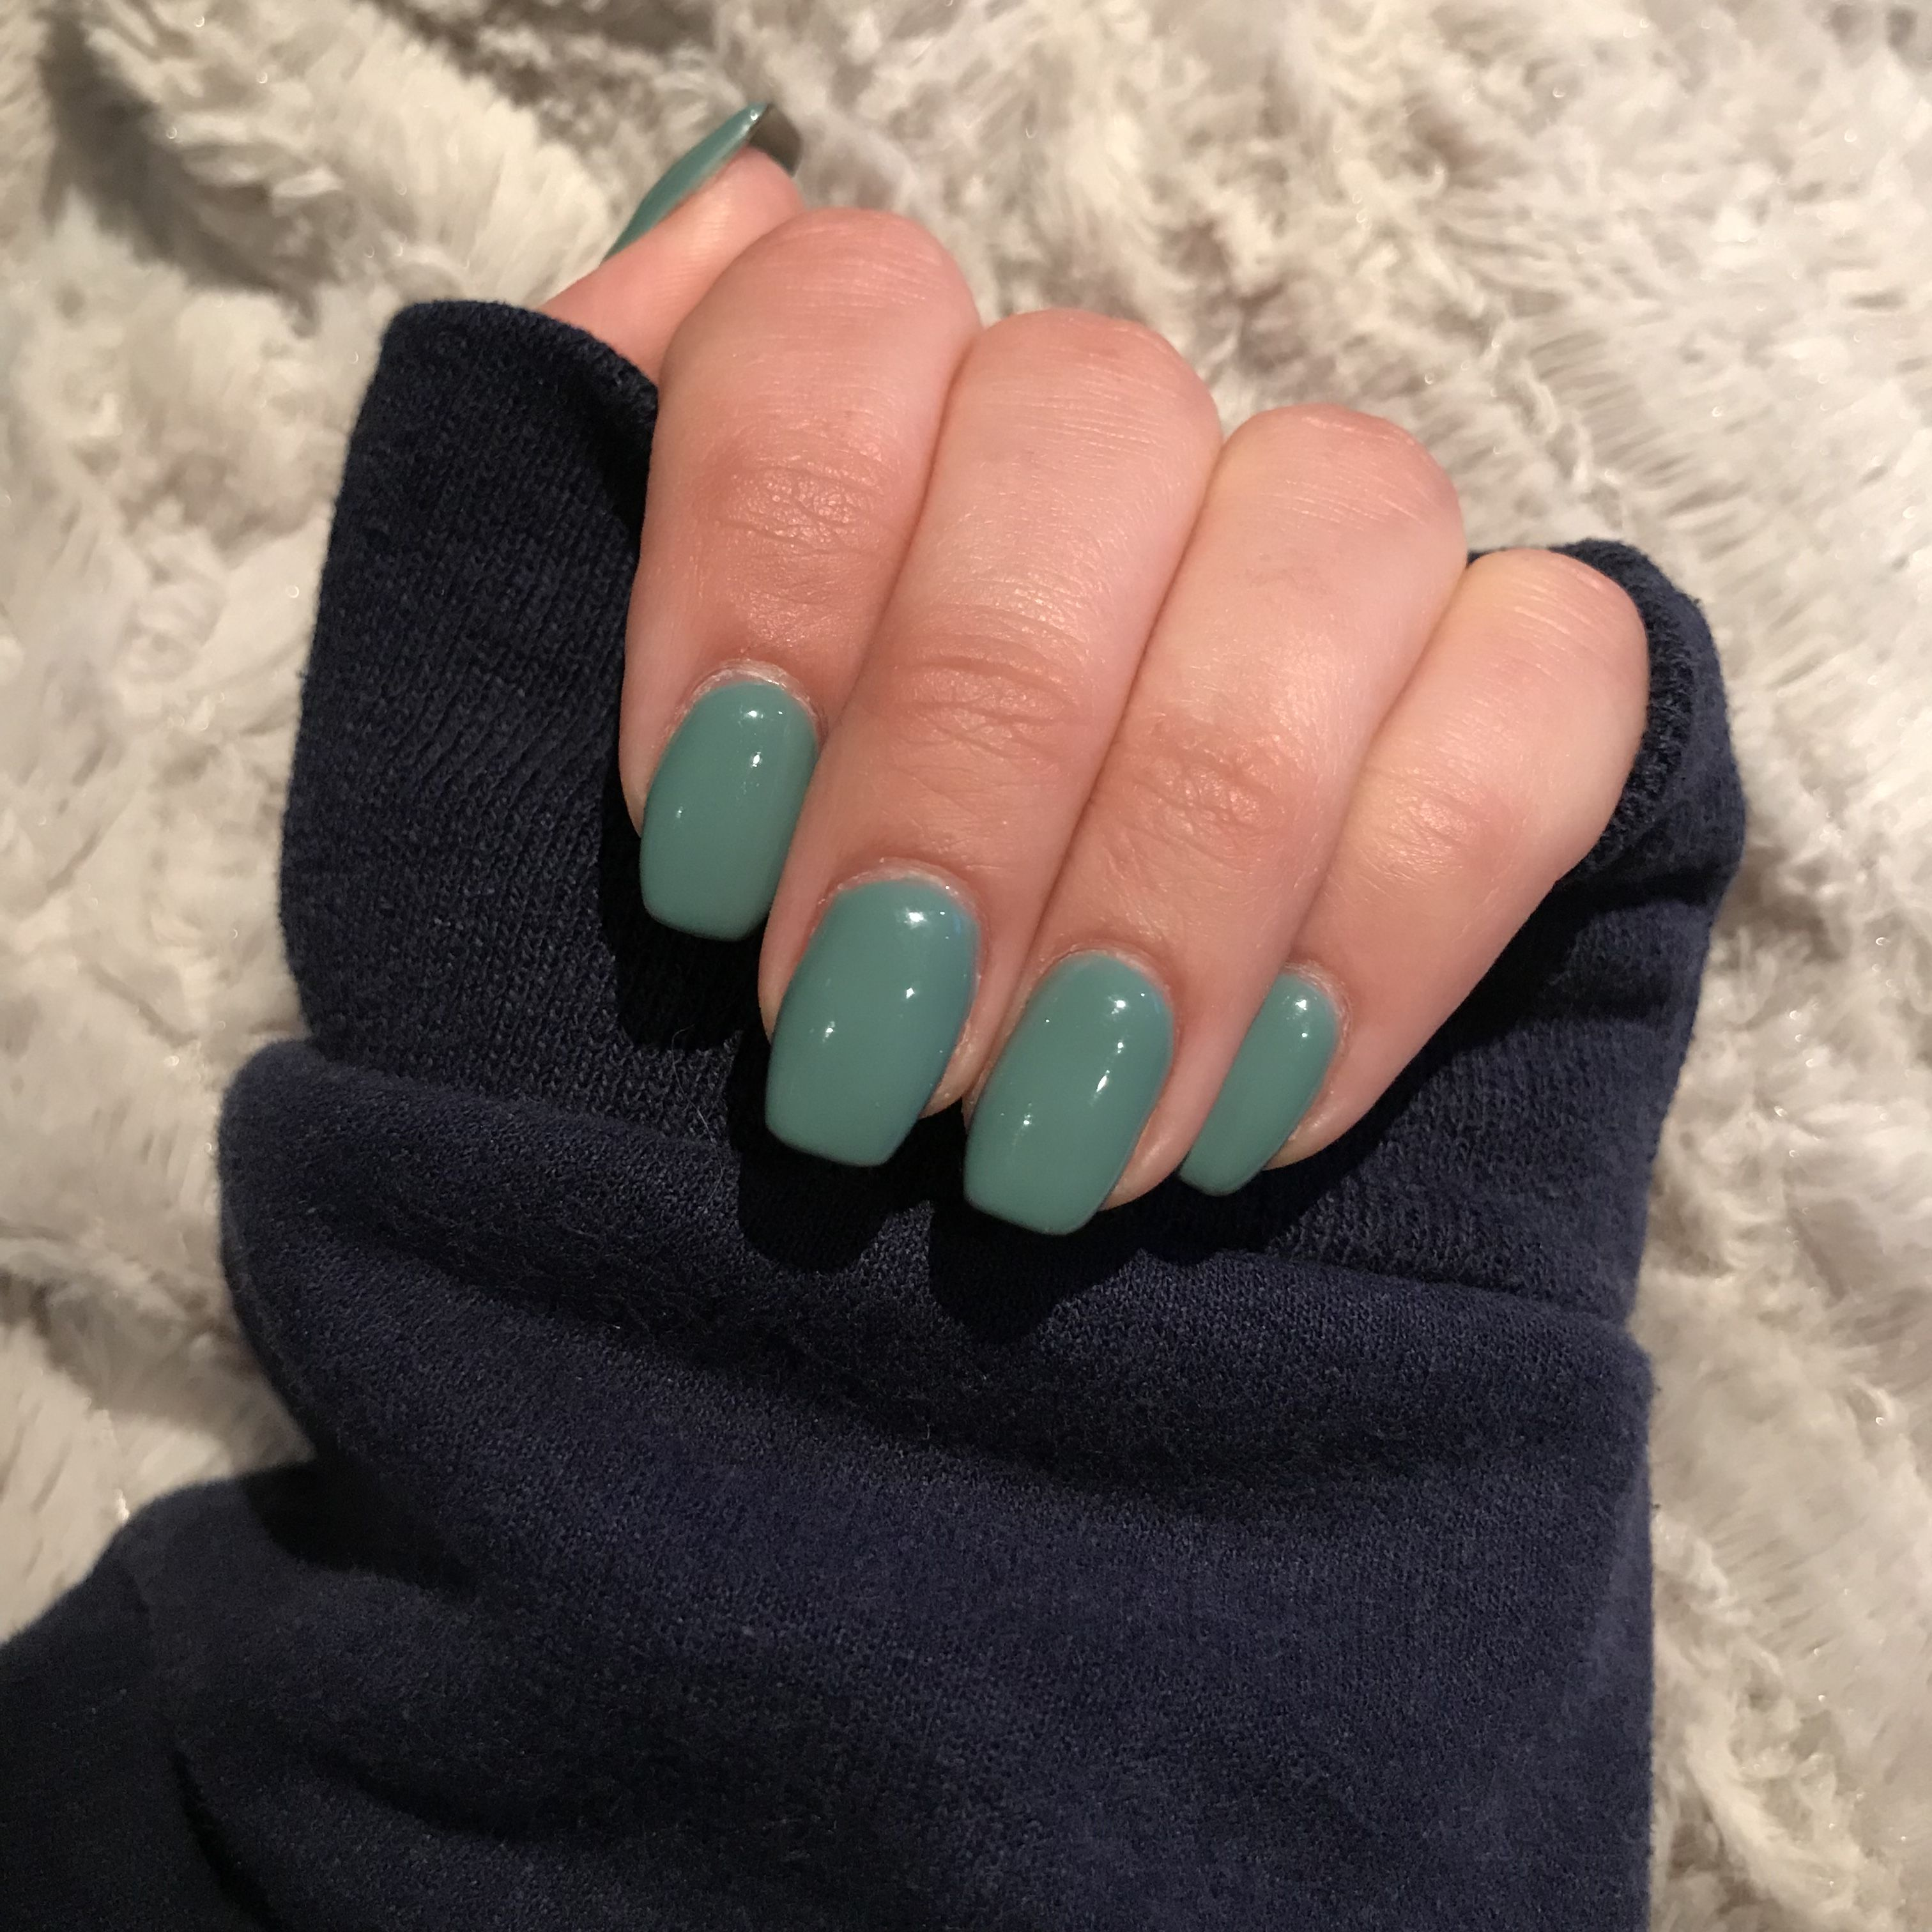 Mid Length Acrylic Slight Coffin Shape Nails In Teal Coffin Shape Nails Gel Nails Shape Teal Nails